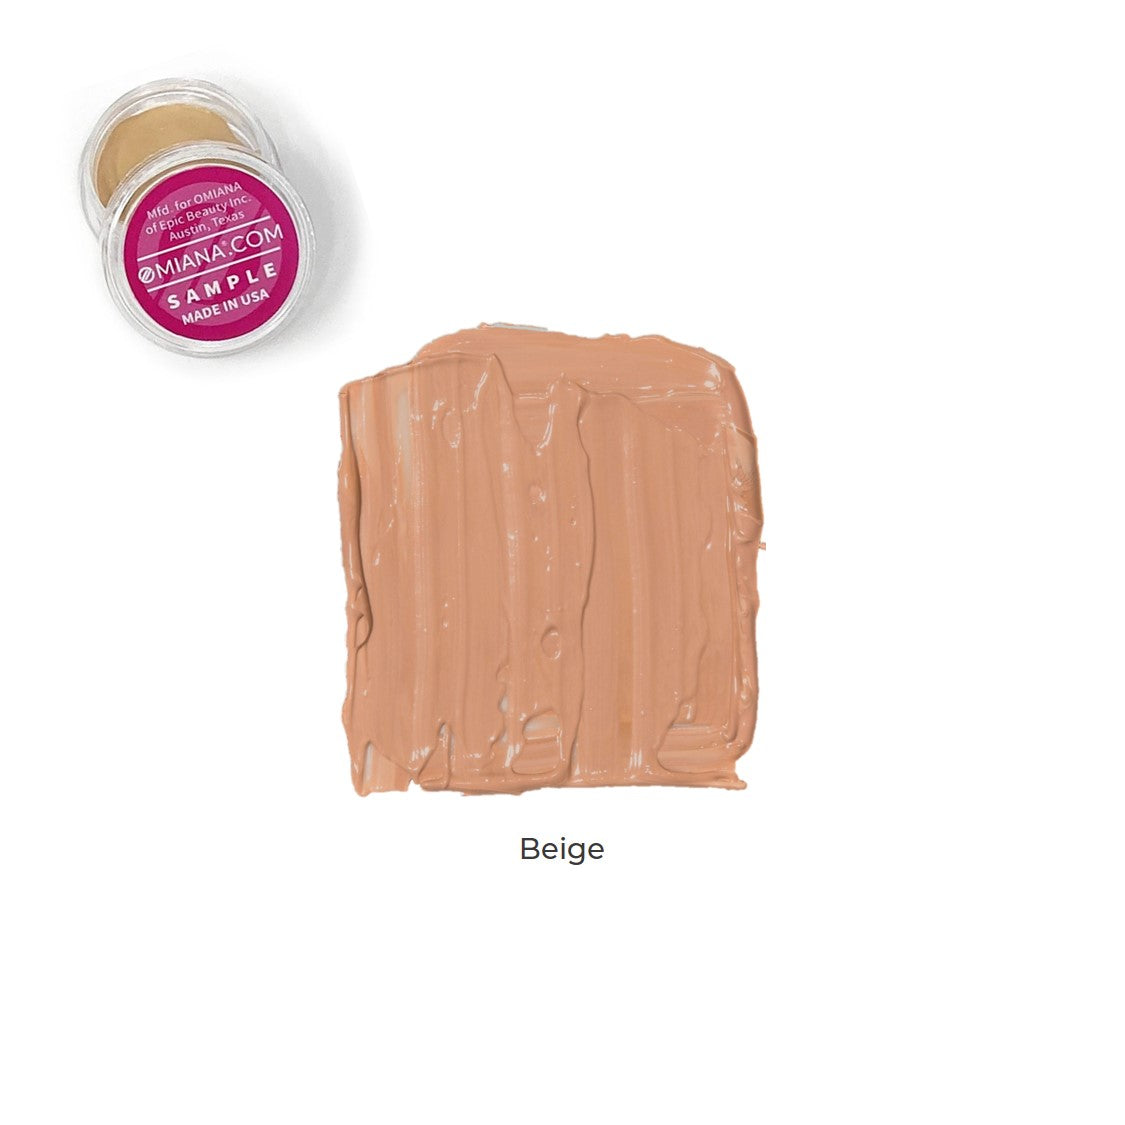 Velvet Matte Liquid Foundation Sample - Beige